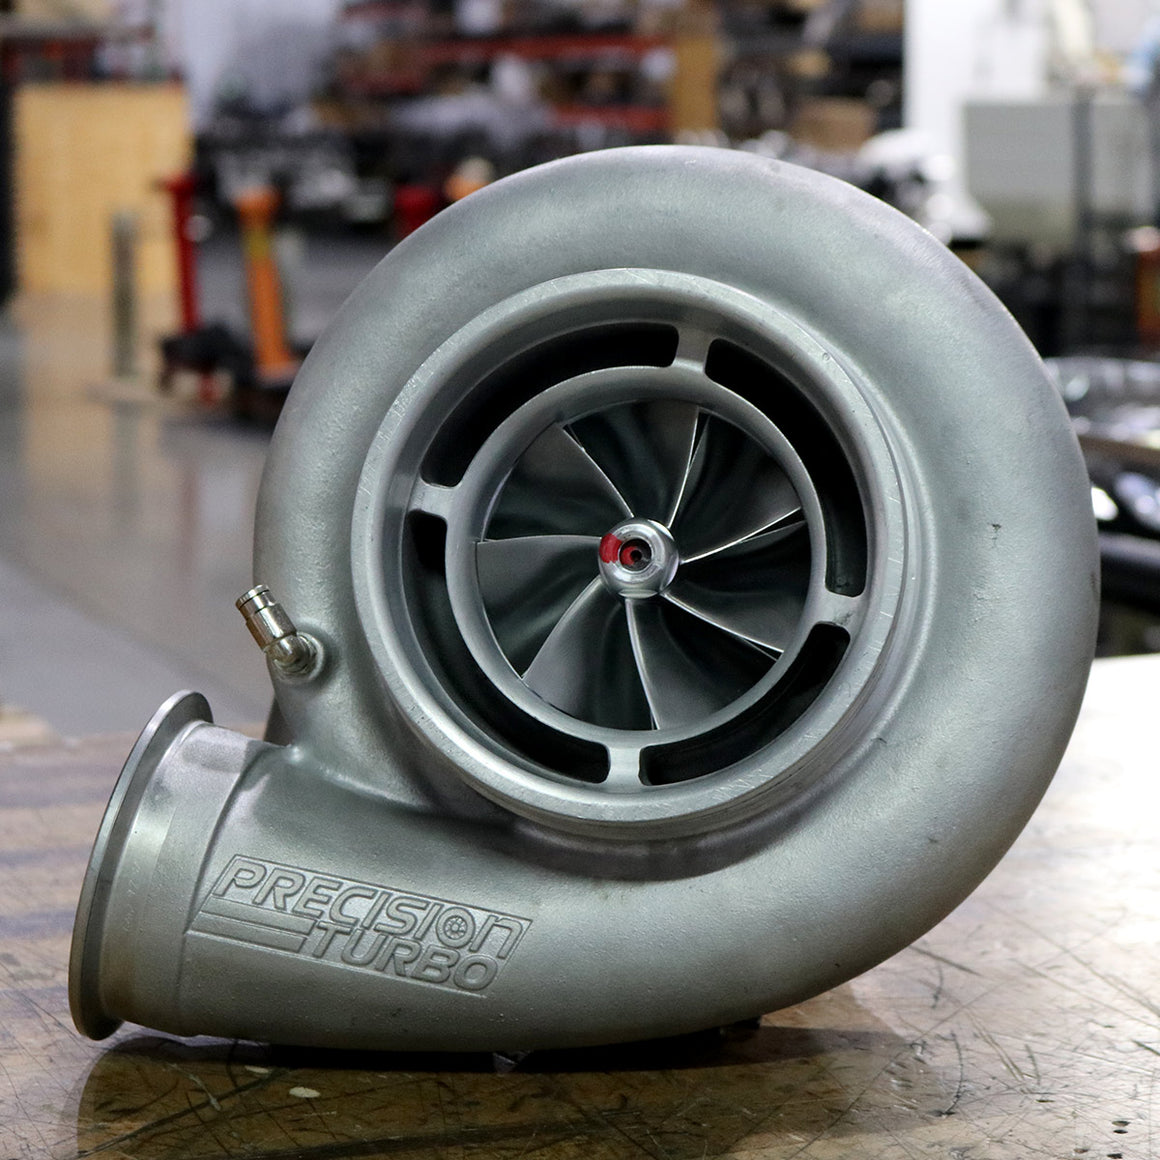 Precision Turbo For Sale: Turbo And Supercharged